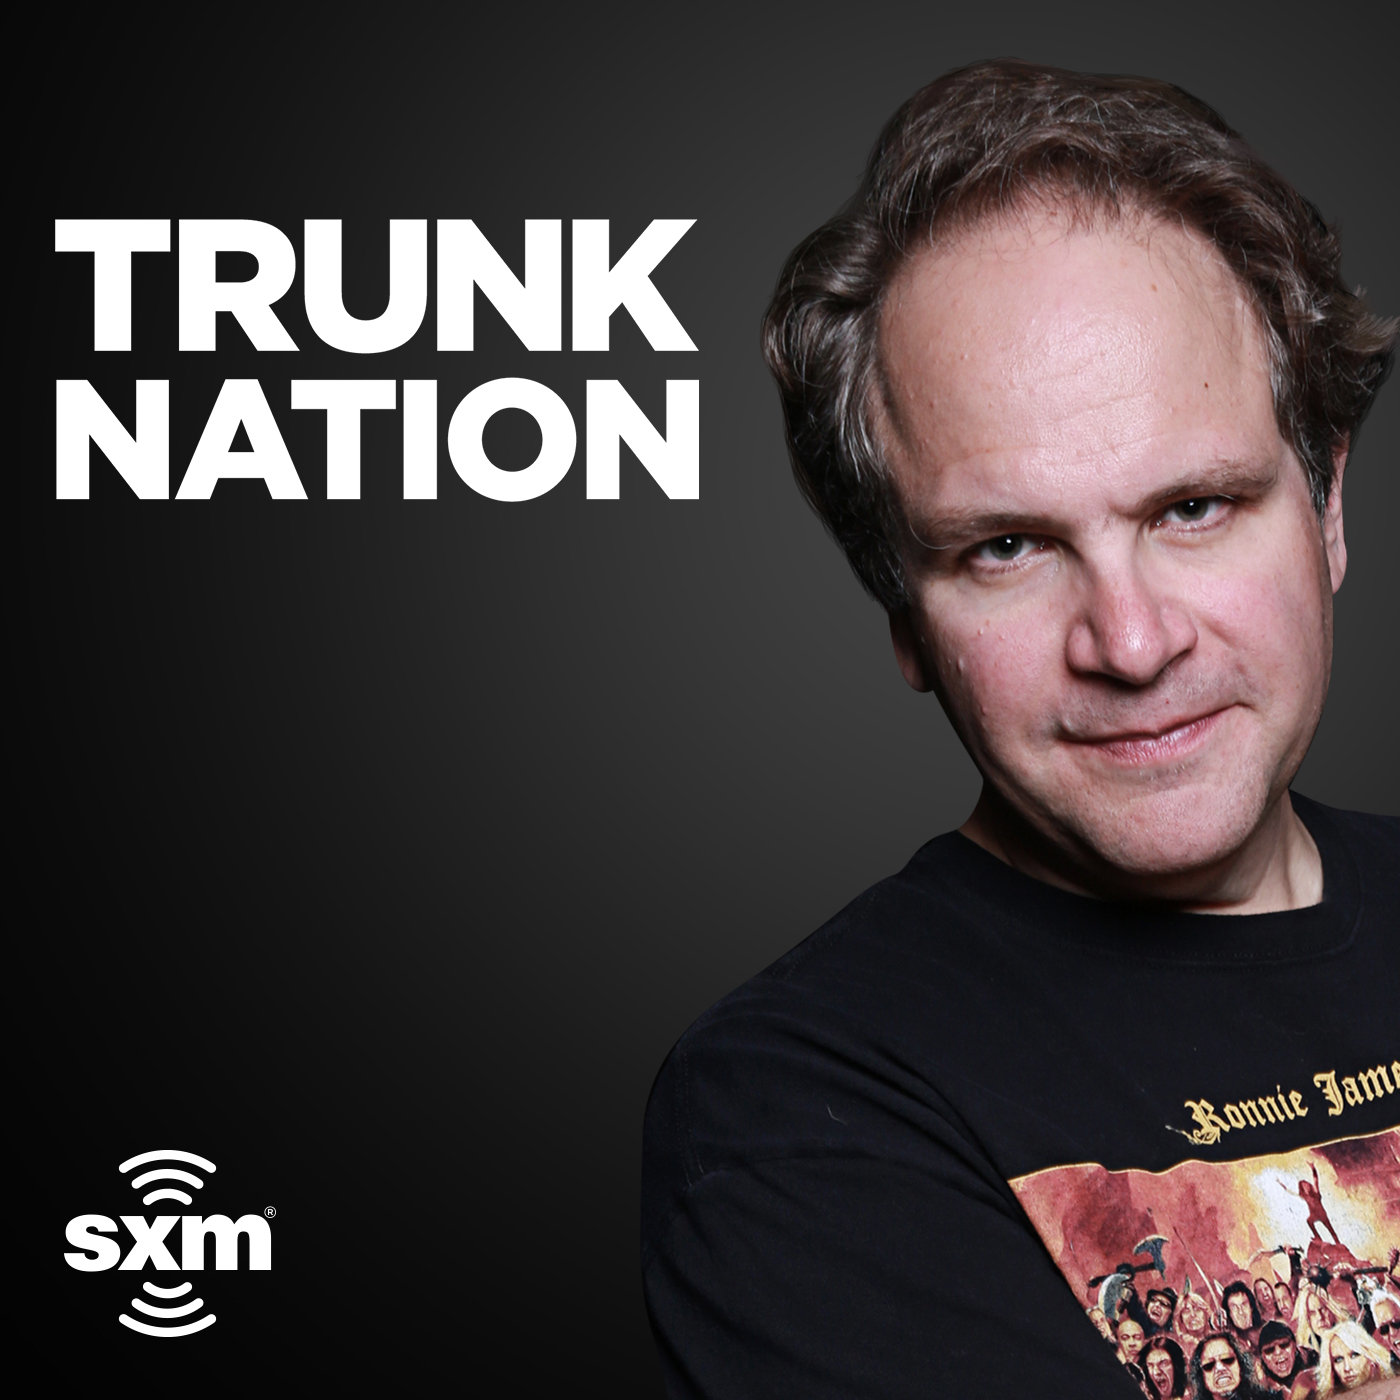 Trunk Nation poster image